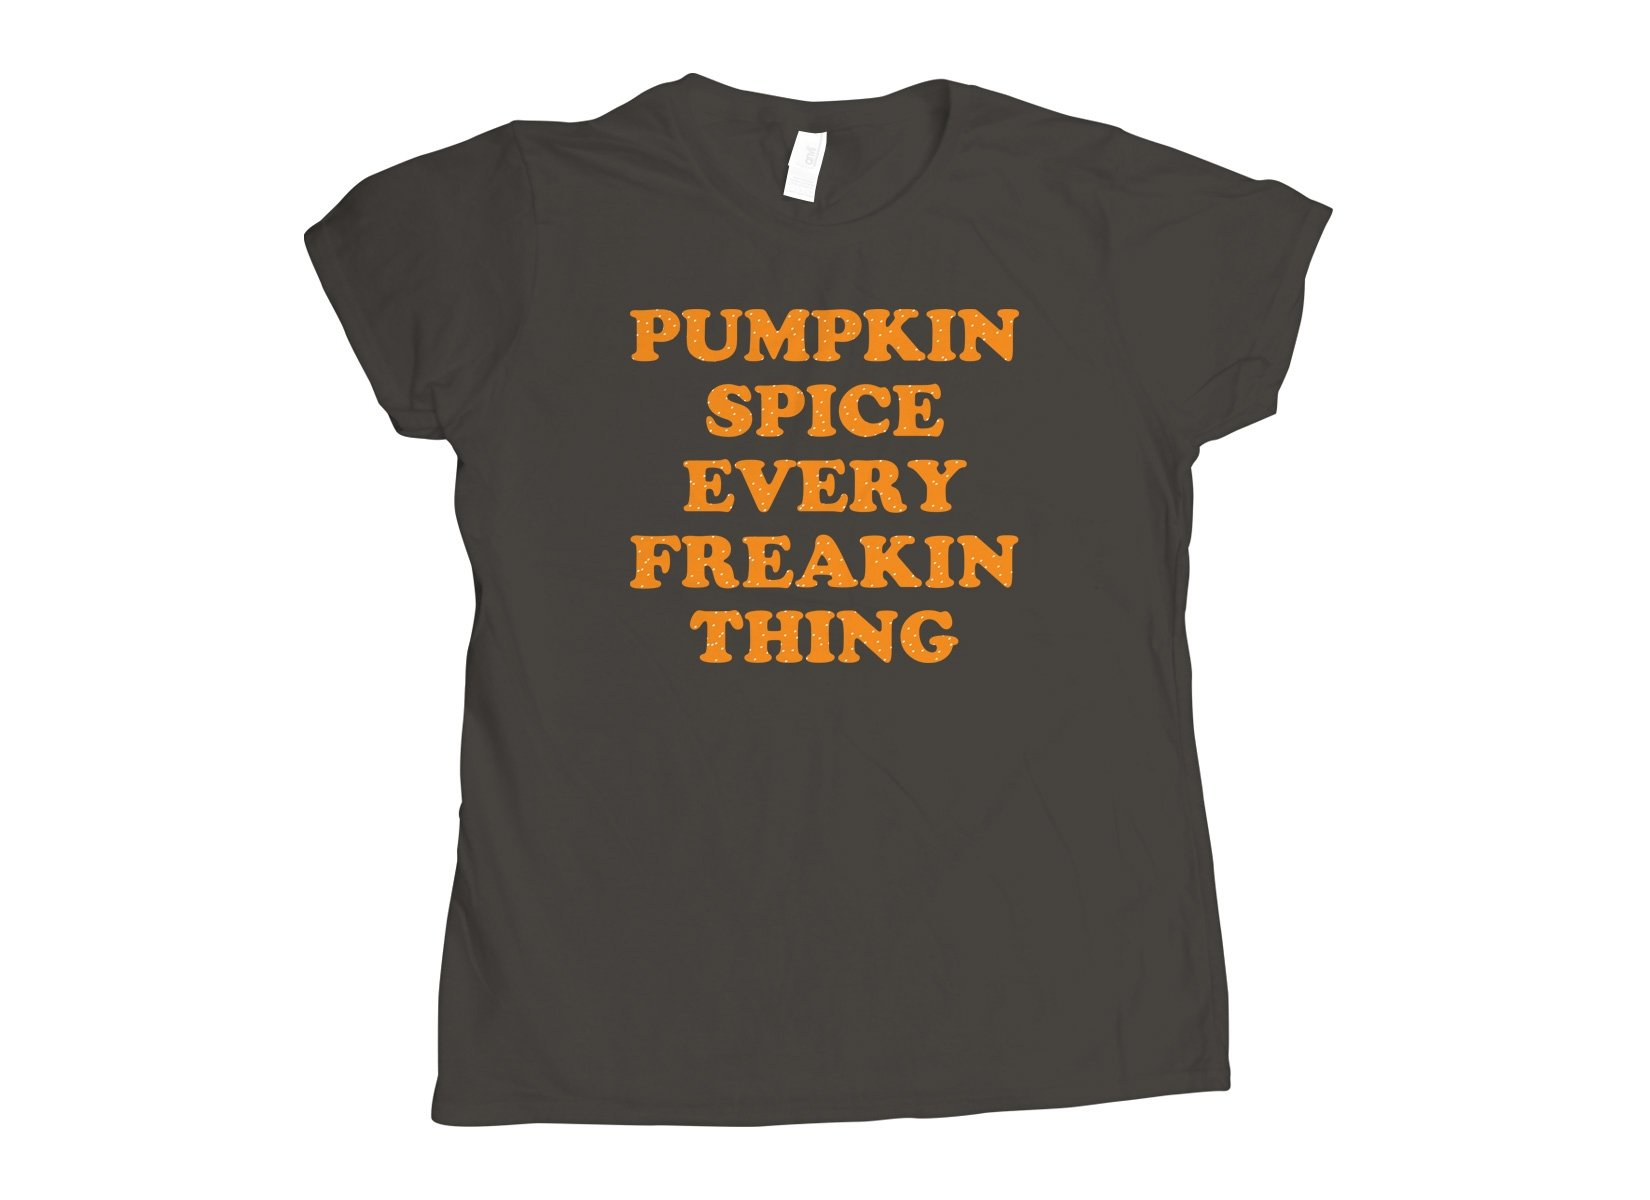 Pumpkin Spice Every Freakin Thing on Womens T-Shirt